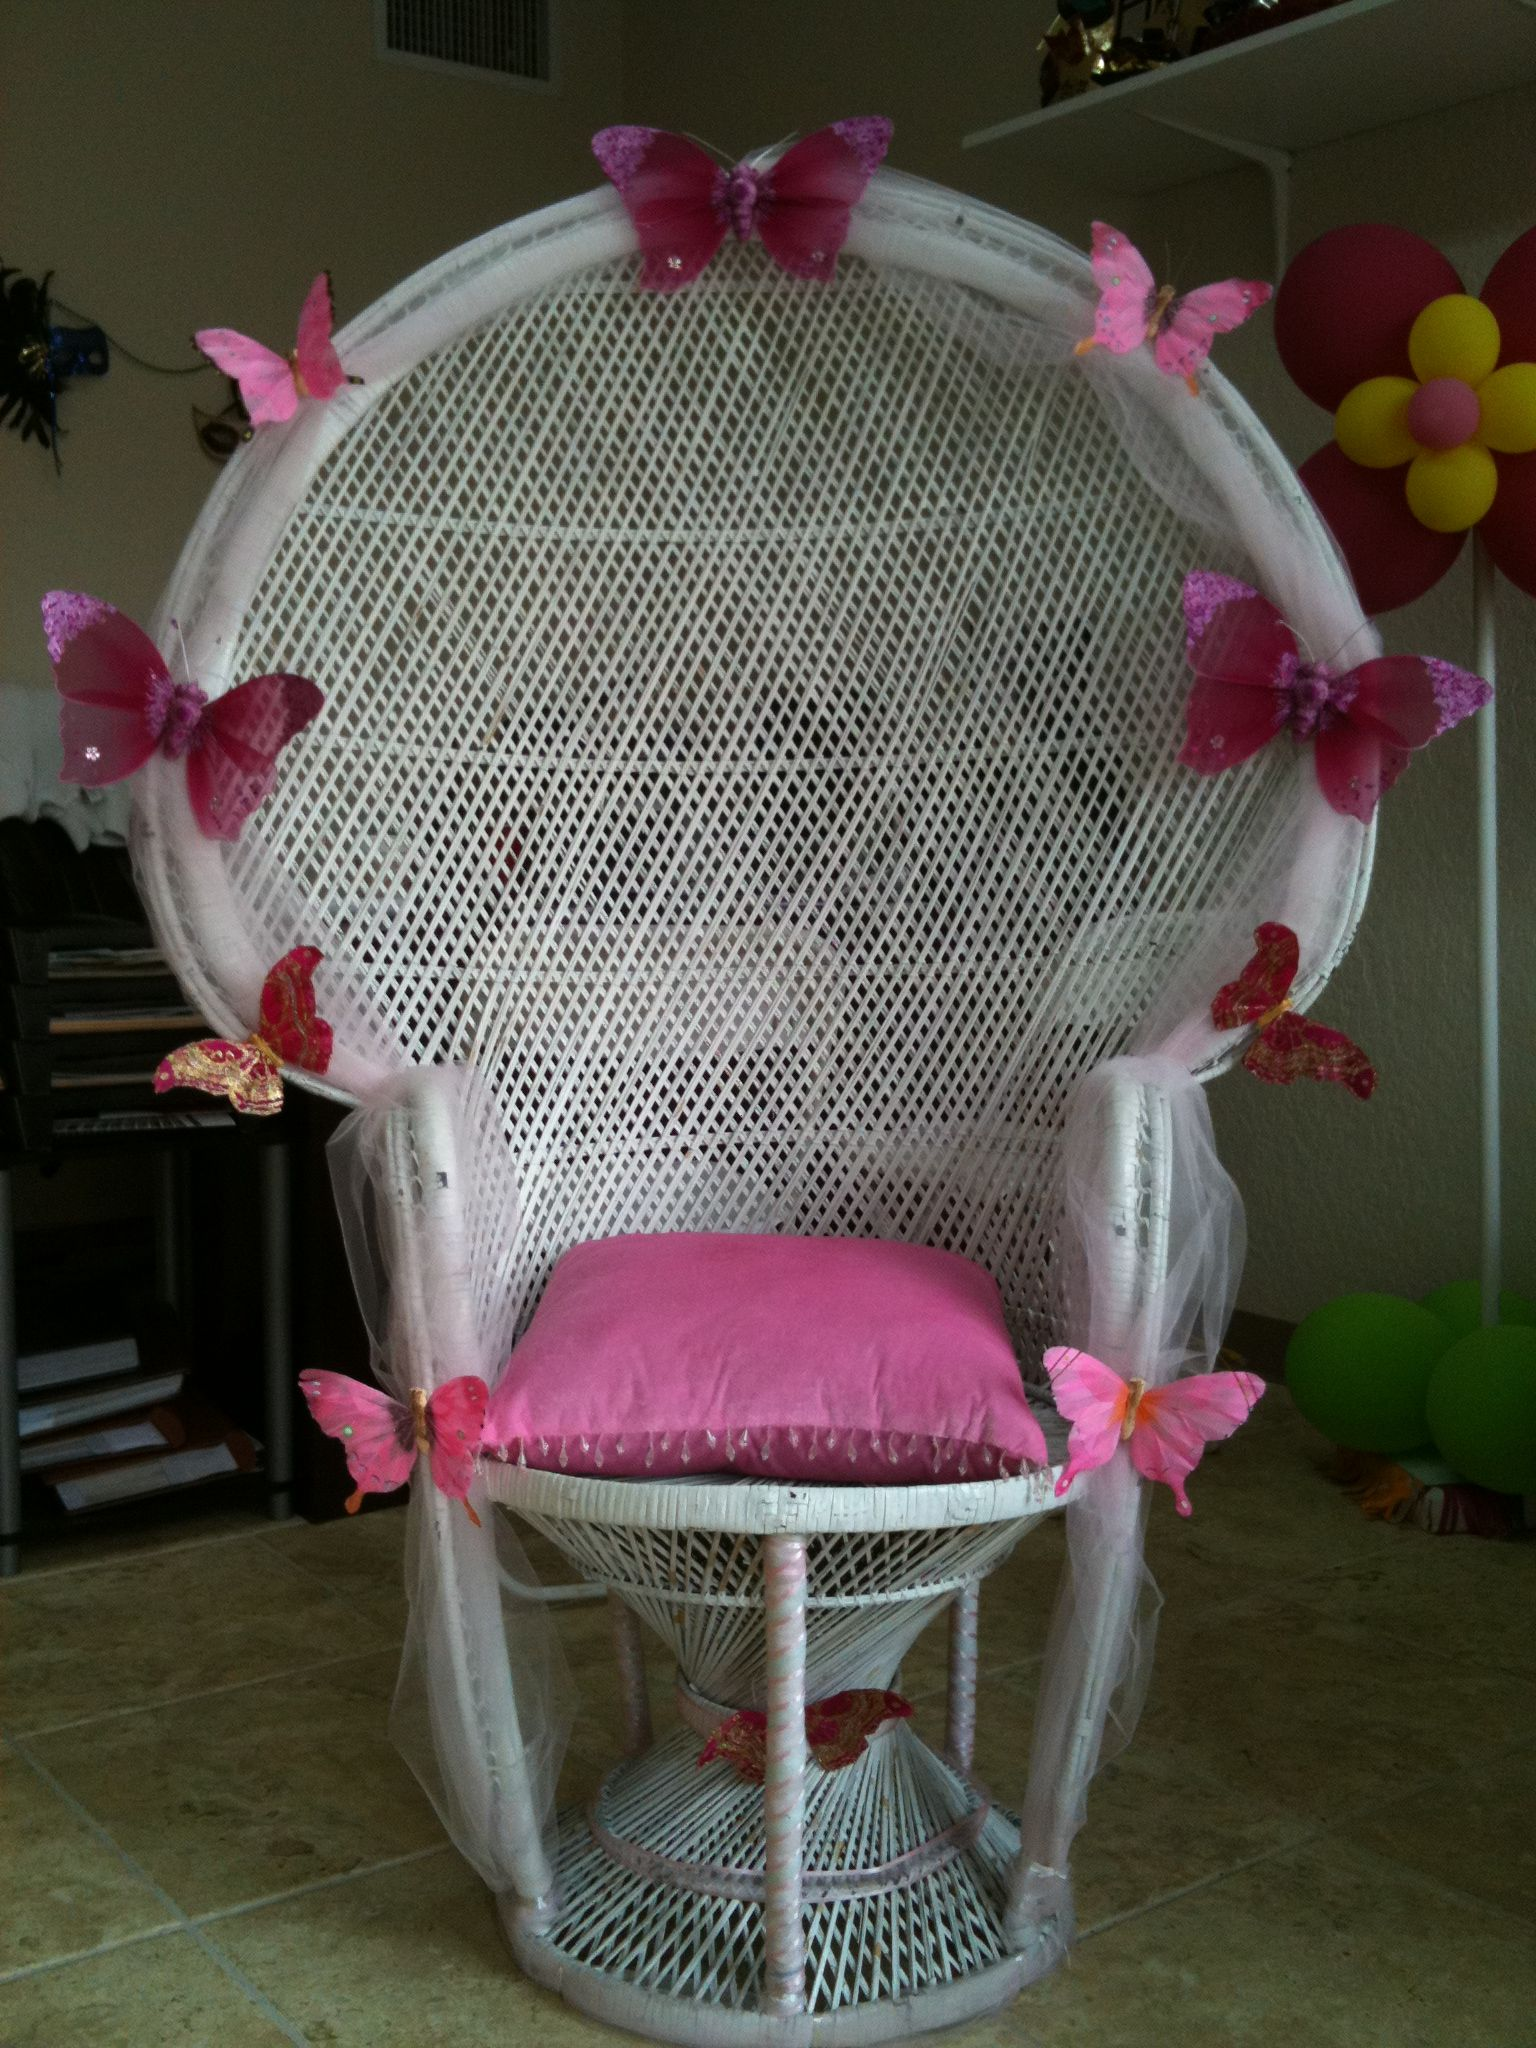 Decoration Nice Nice Decoration Ideas Baby Shower Mother's Chair | Free